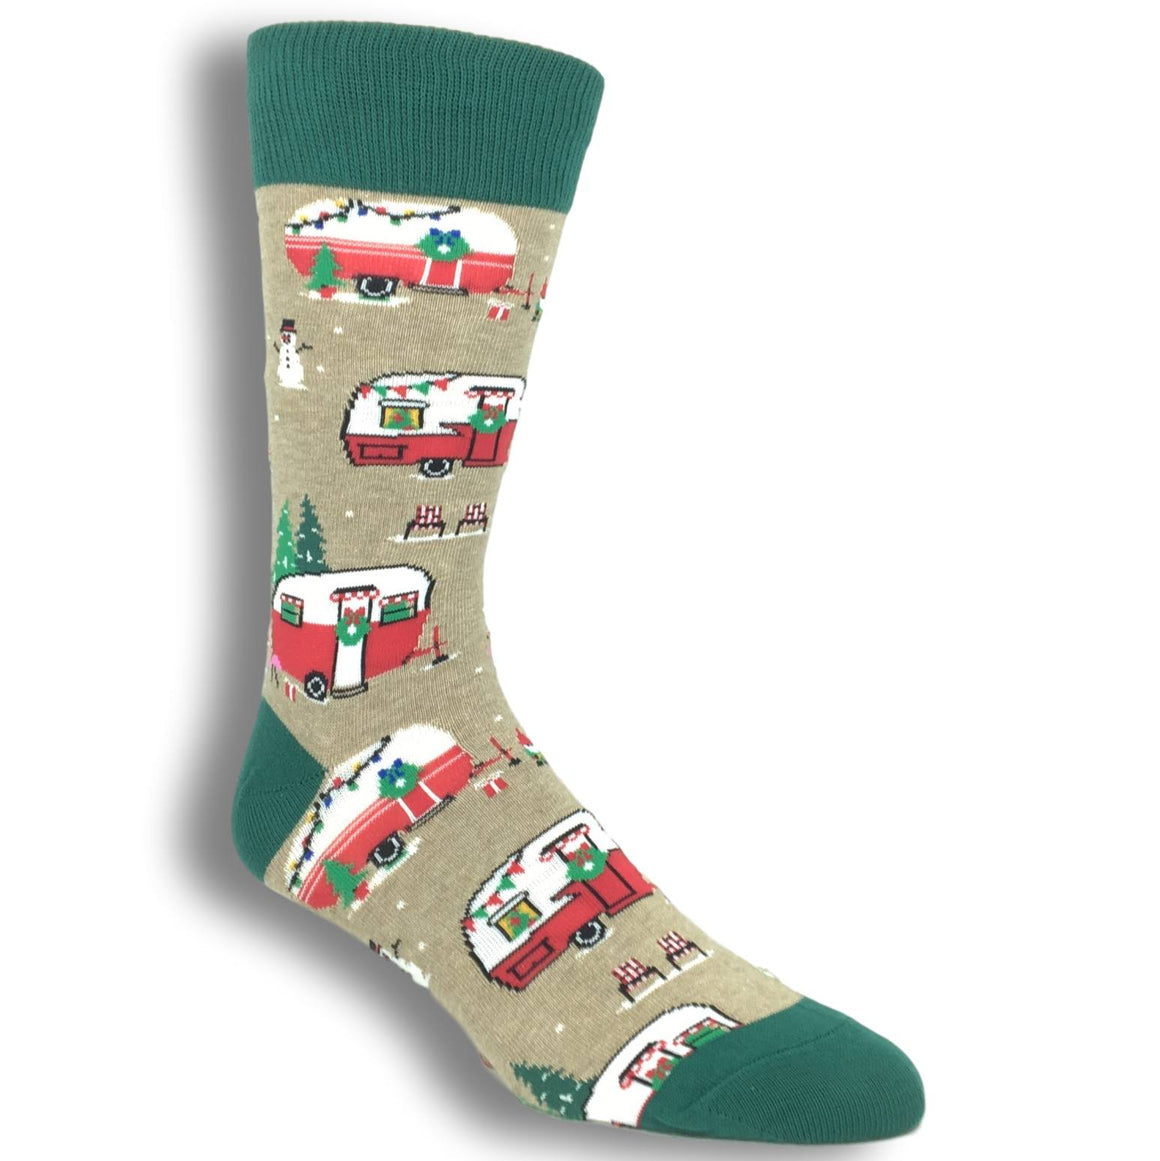 Christmas Campers Socks in Tan by SockSmith - The Sock Spot